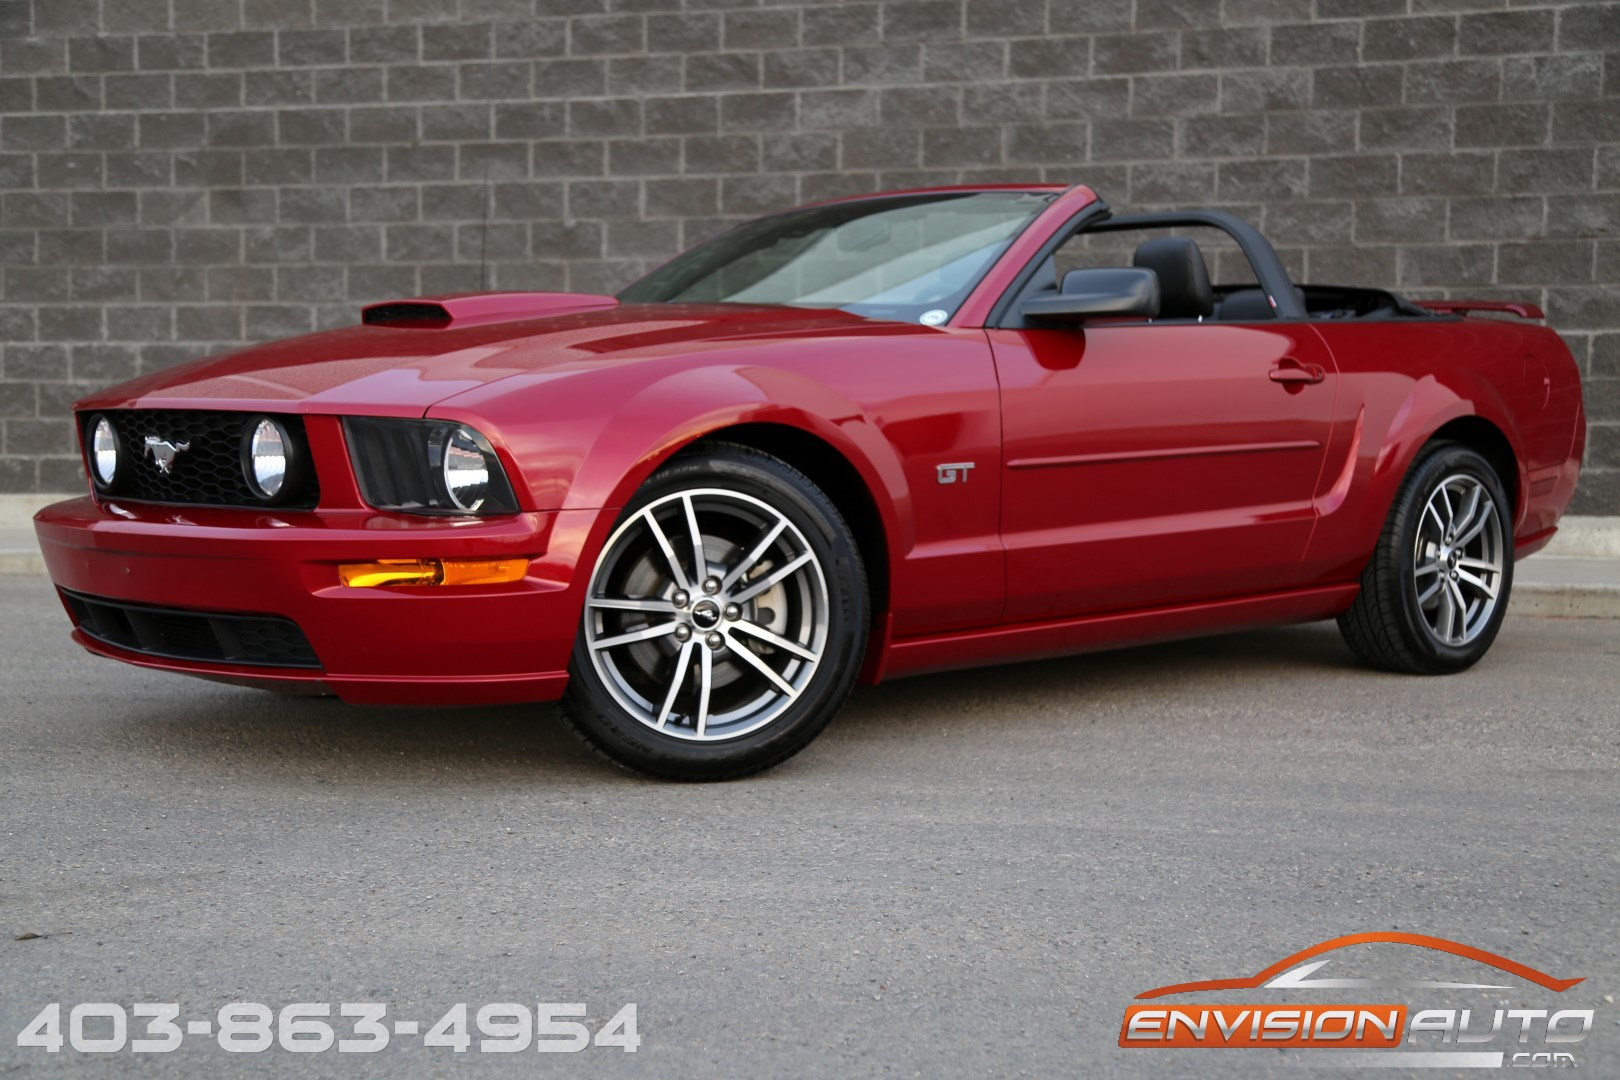 2008 Ford Mustang Gt Convertible Edelbrock Supercharged